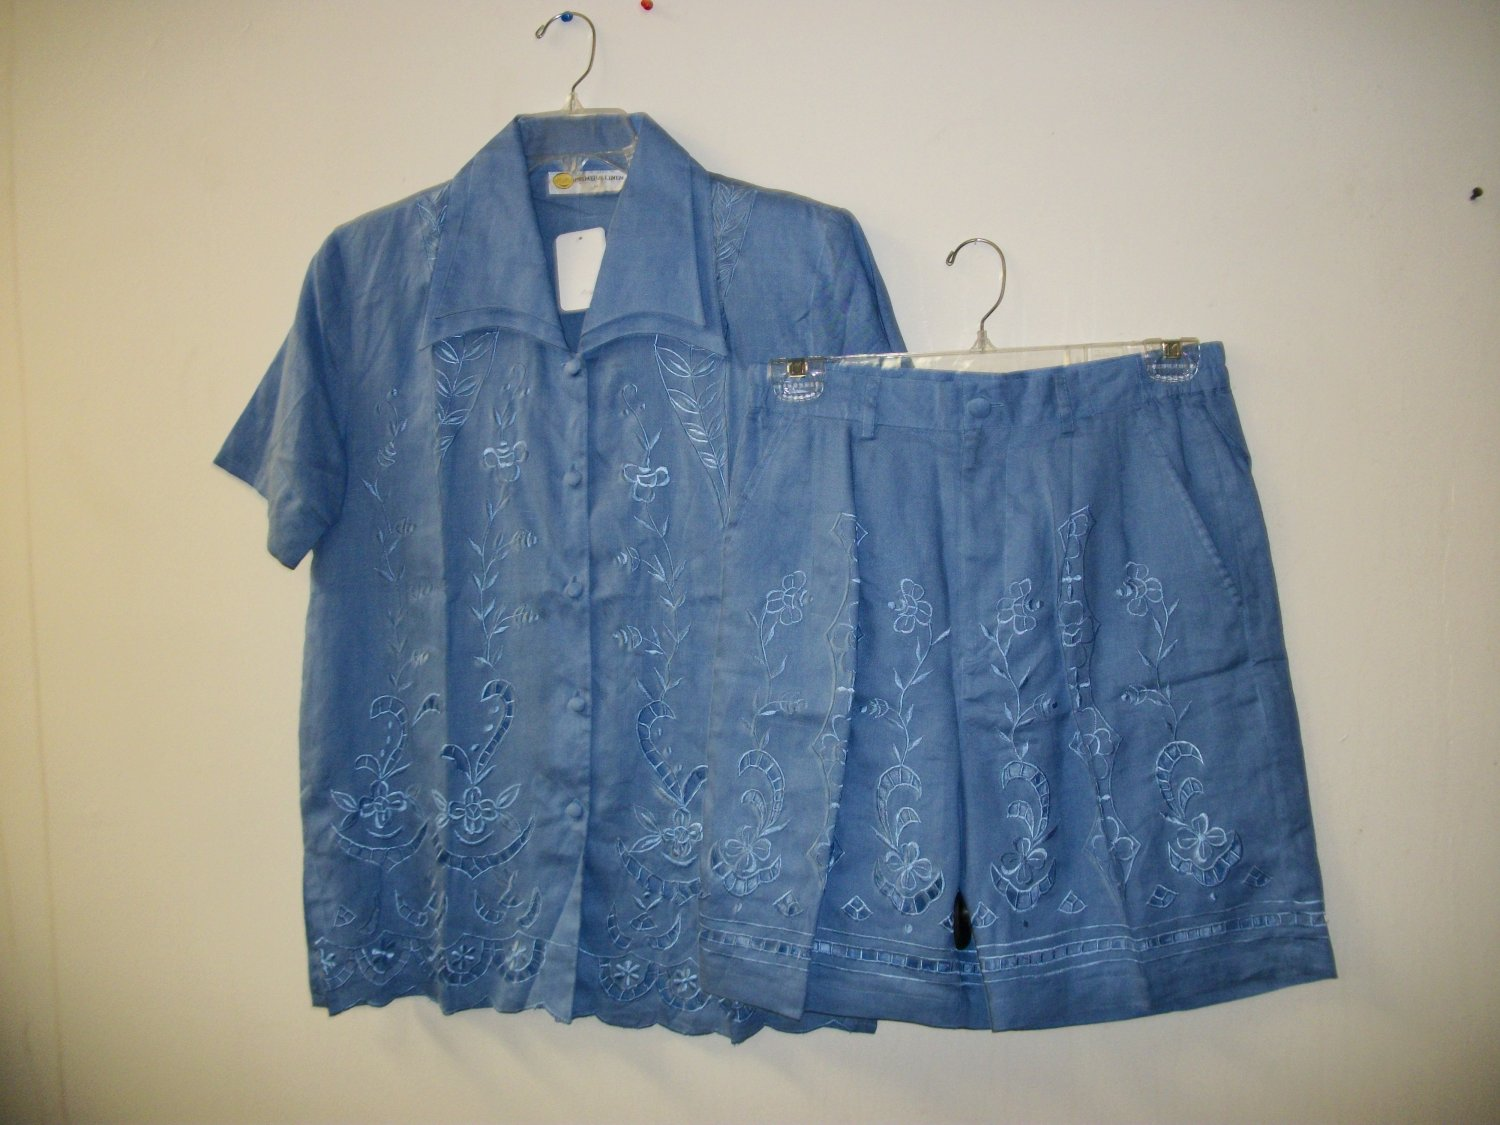 2pc blue 100% linen short set for ladies, knee length shorts, embroidery on blouse & shorts